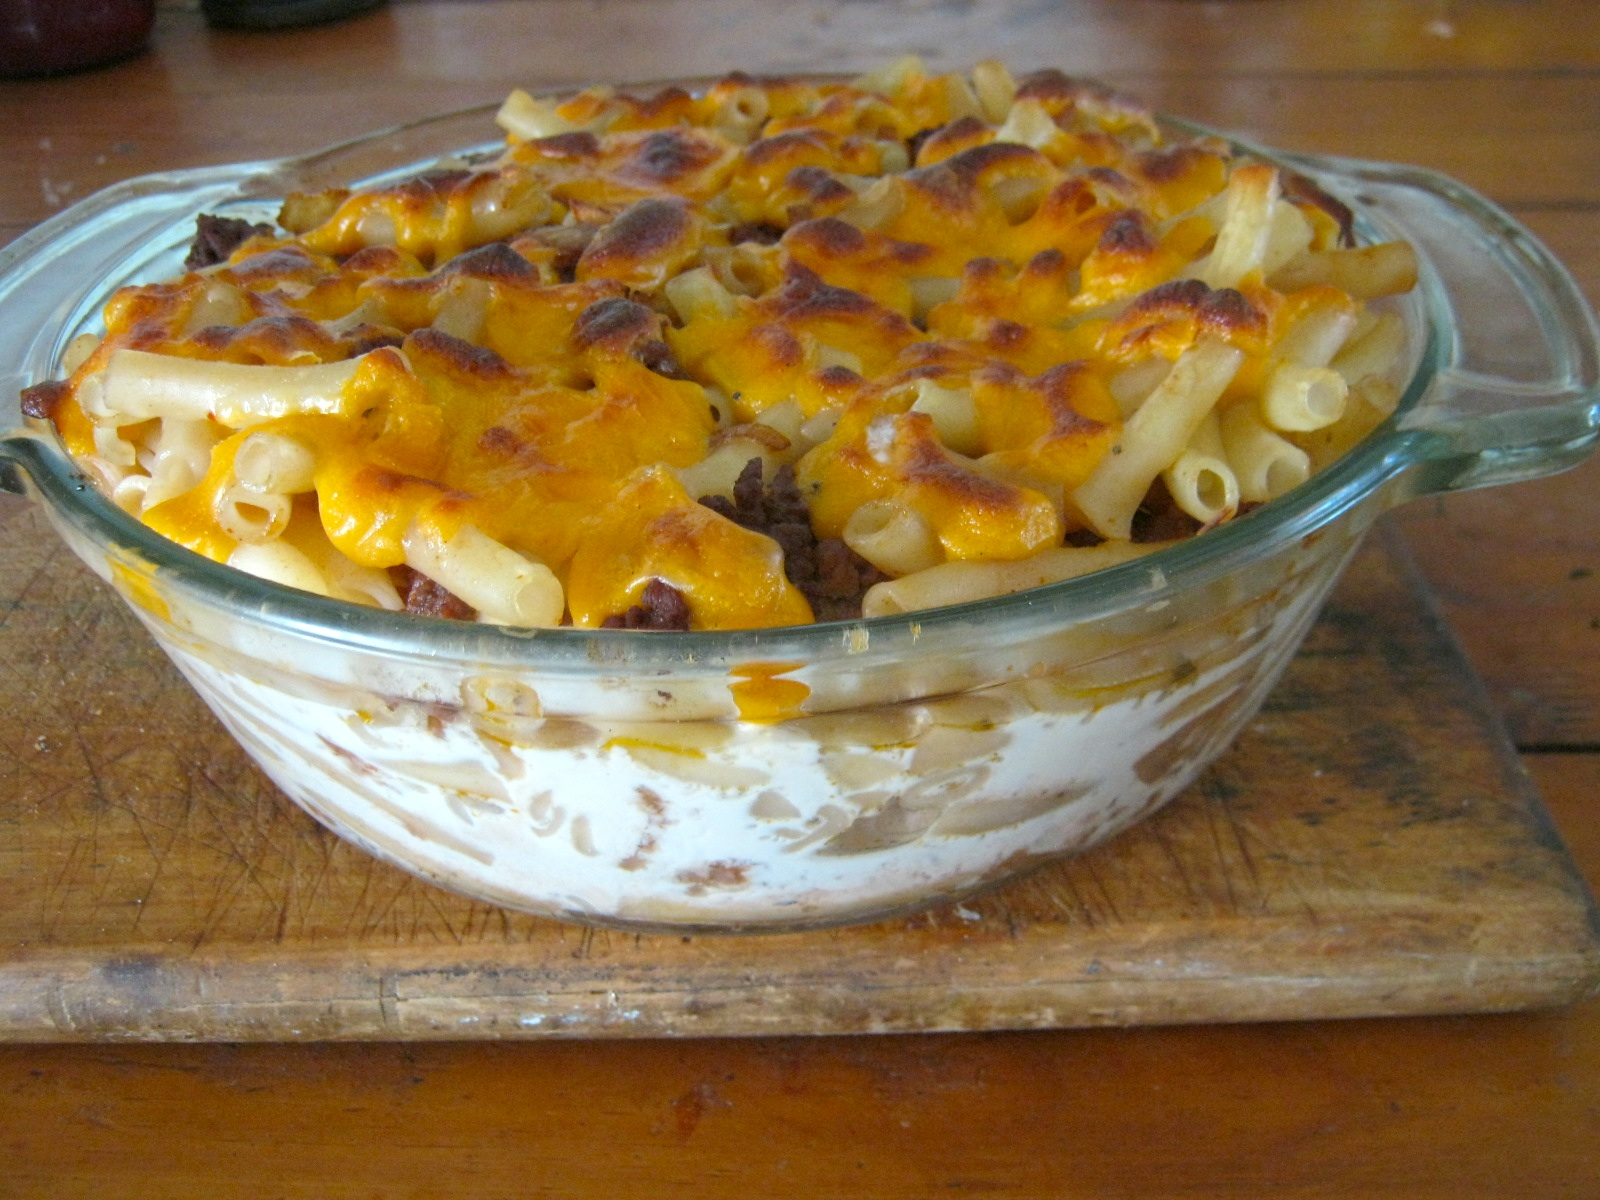 Strasbourg casserole - A beef casserole with red wine, cream and fresh herbs